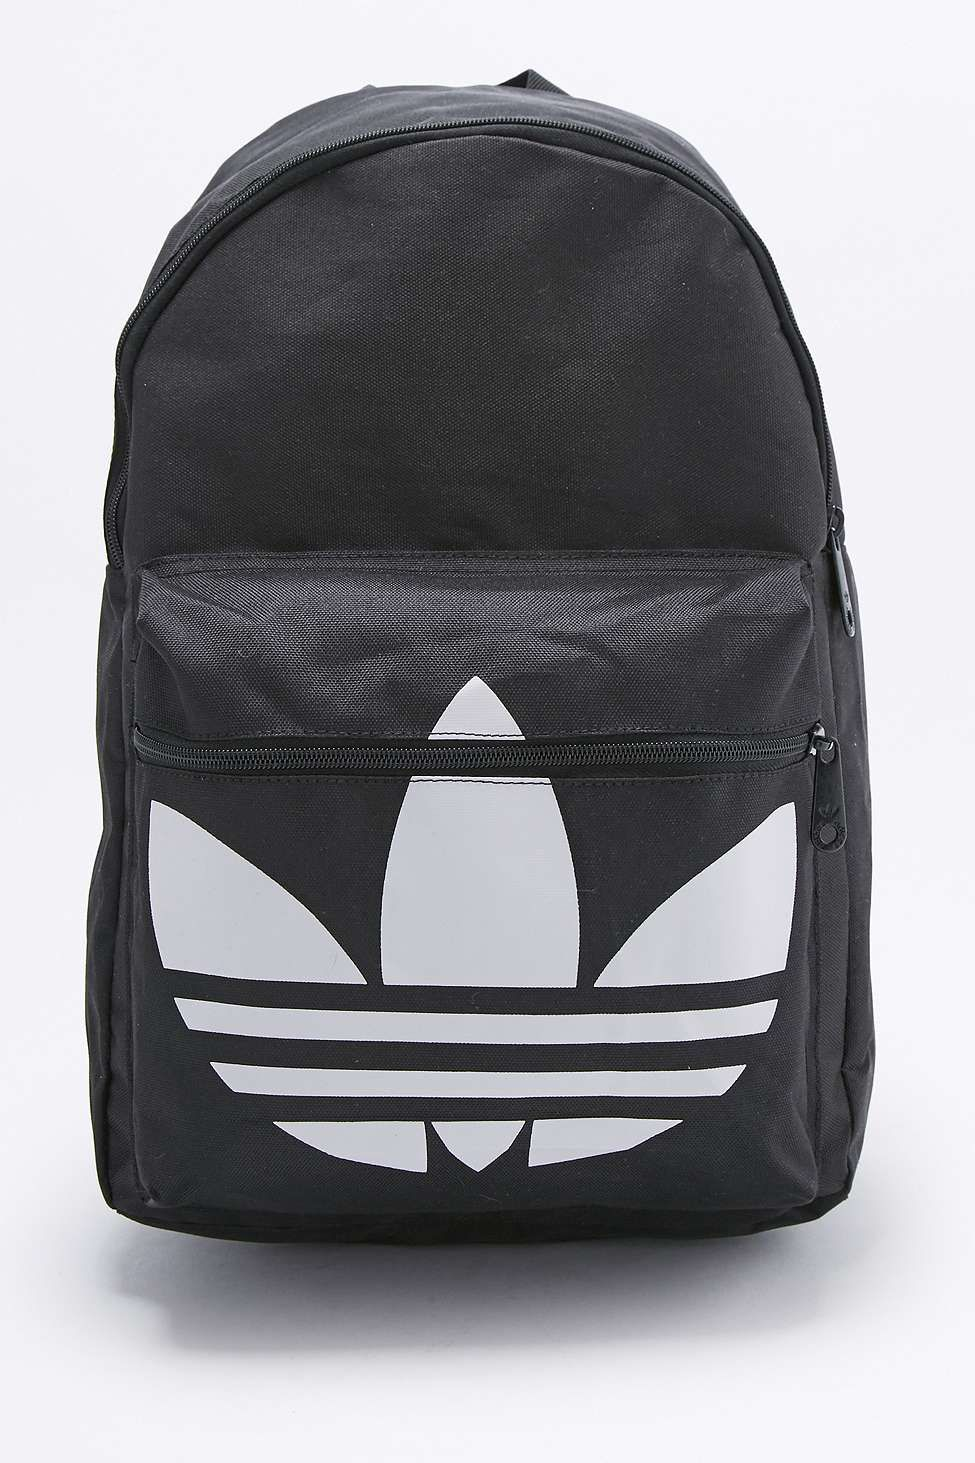 4737a15949484 adidas Originals Classic Trefoil Black Backpack